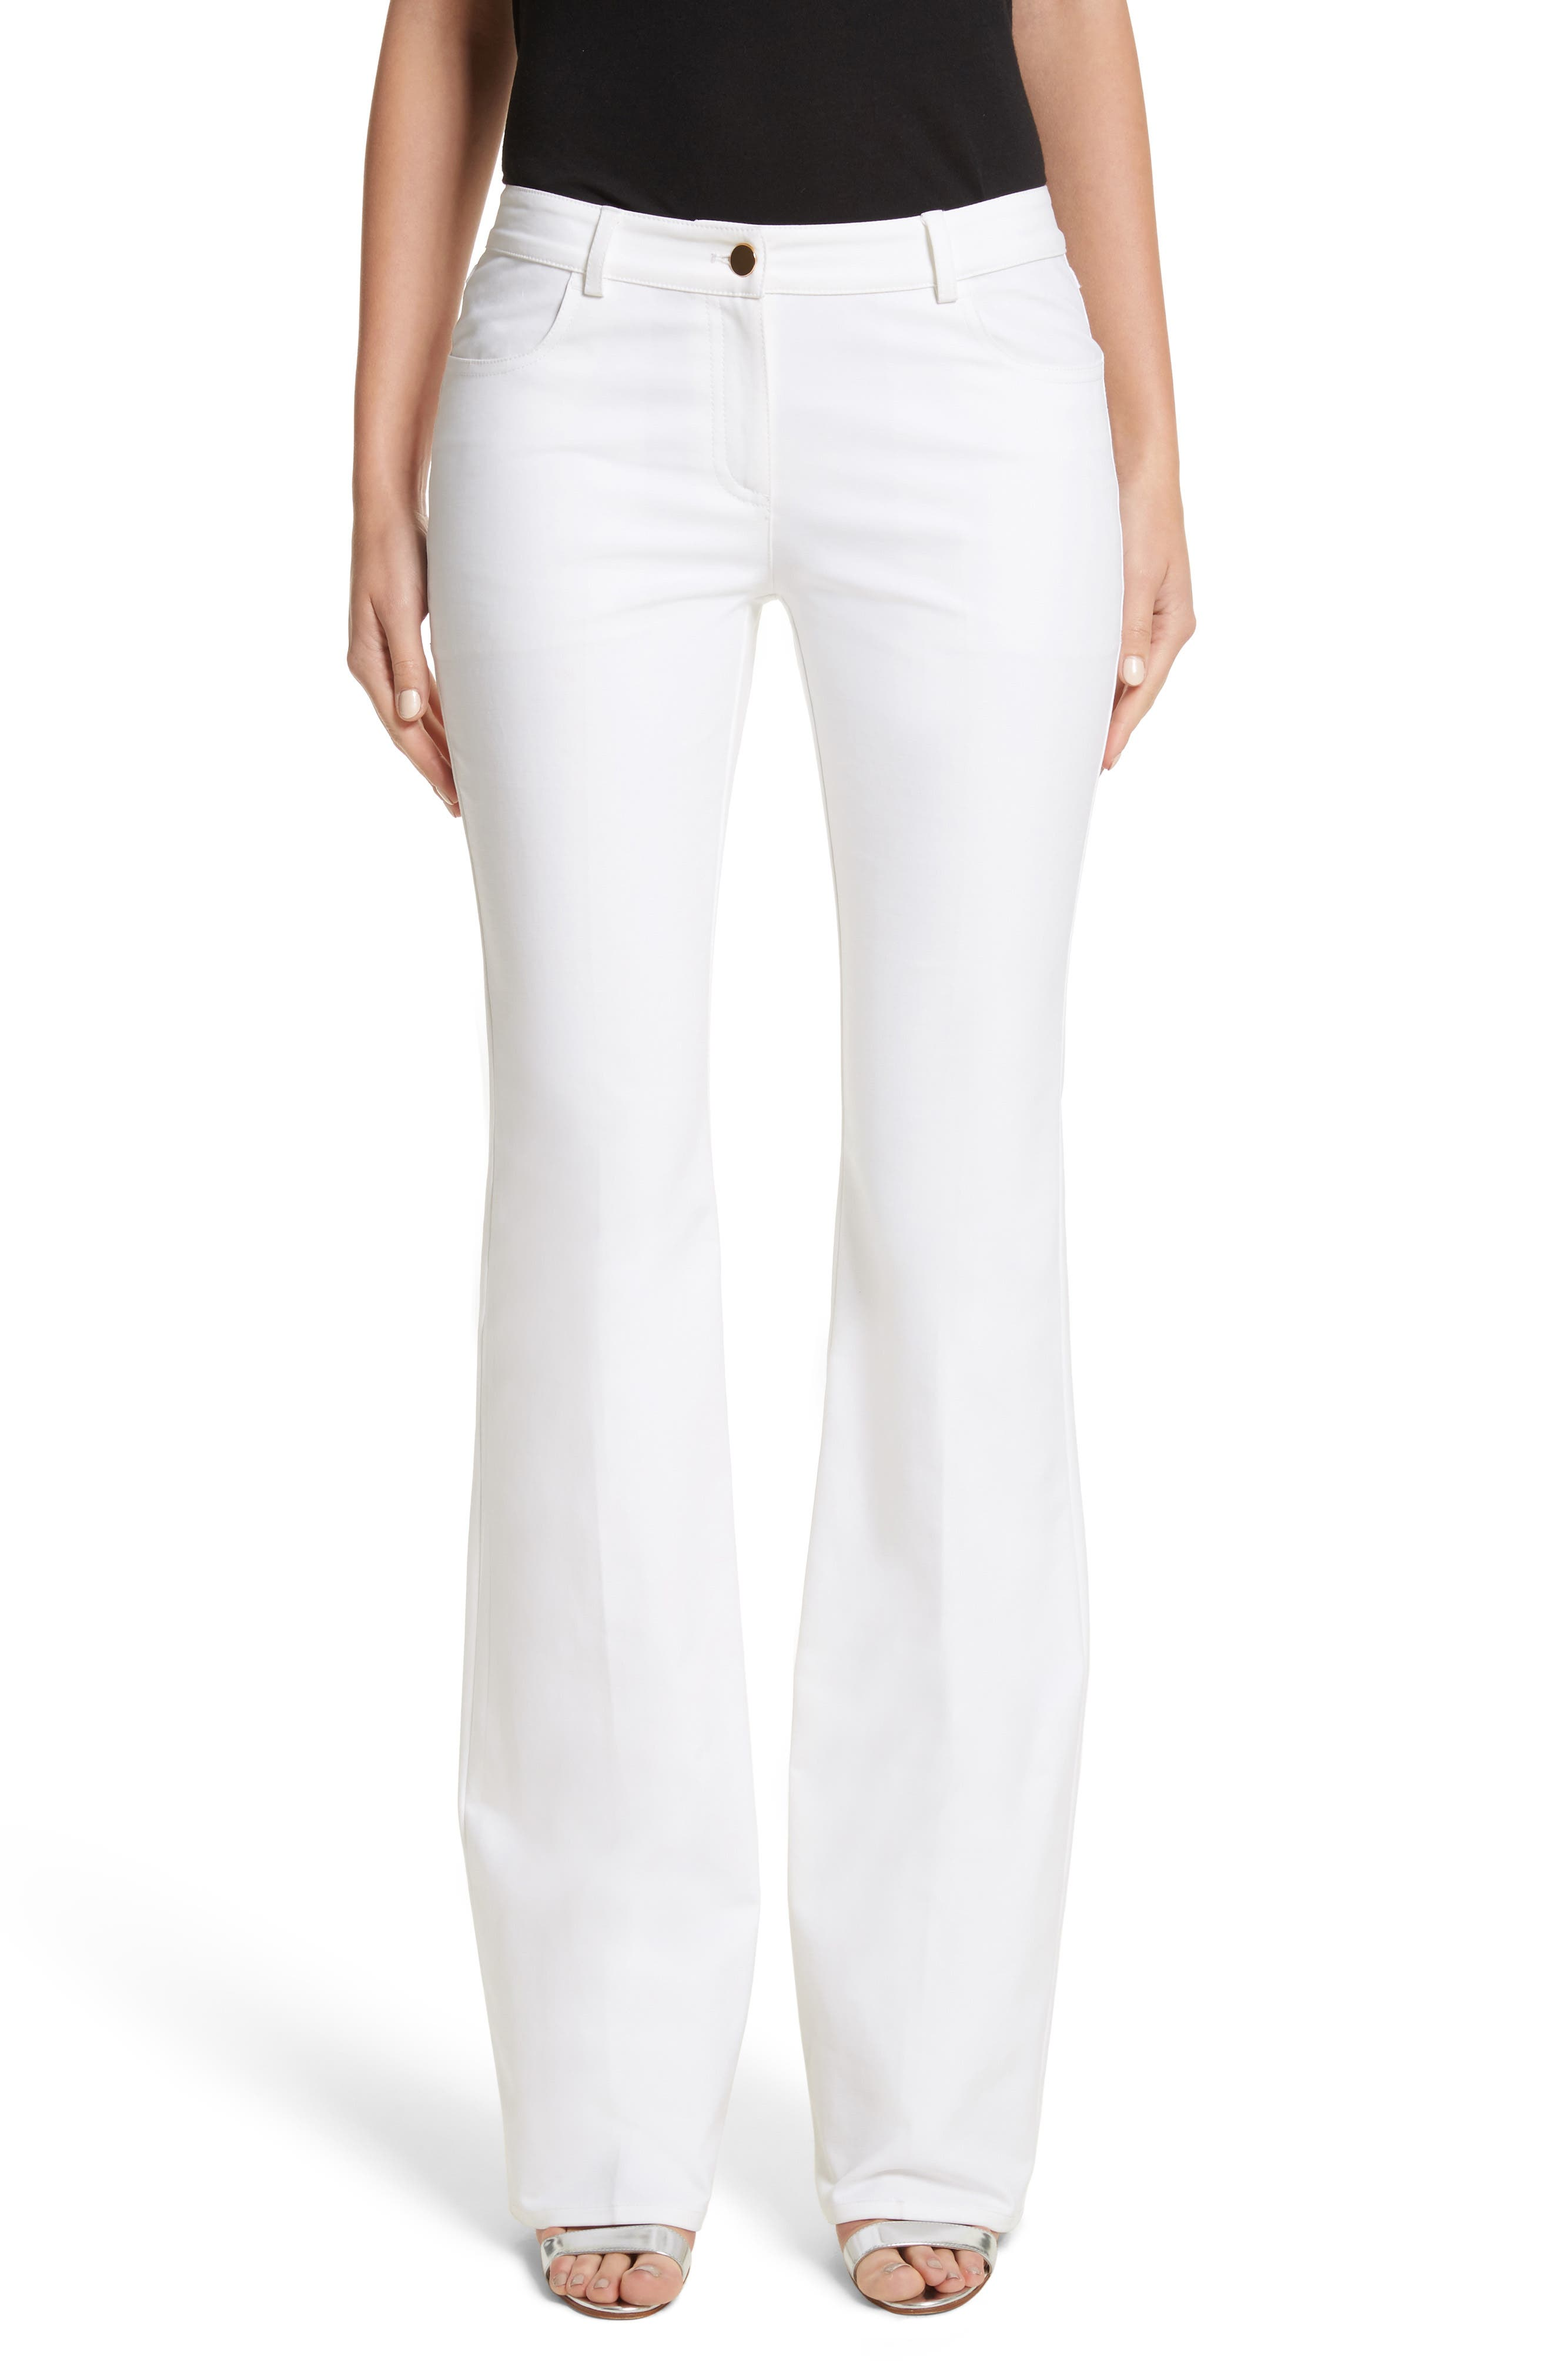 Michael Kors Flare Jeans